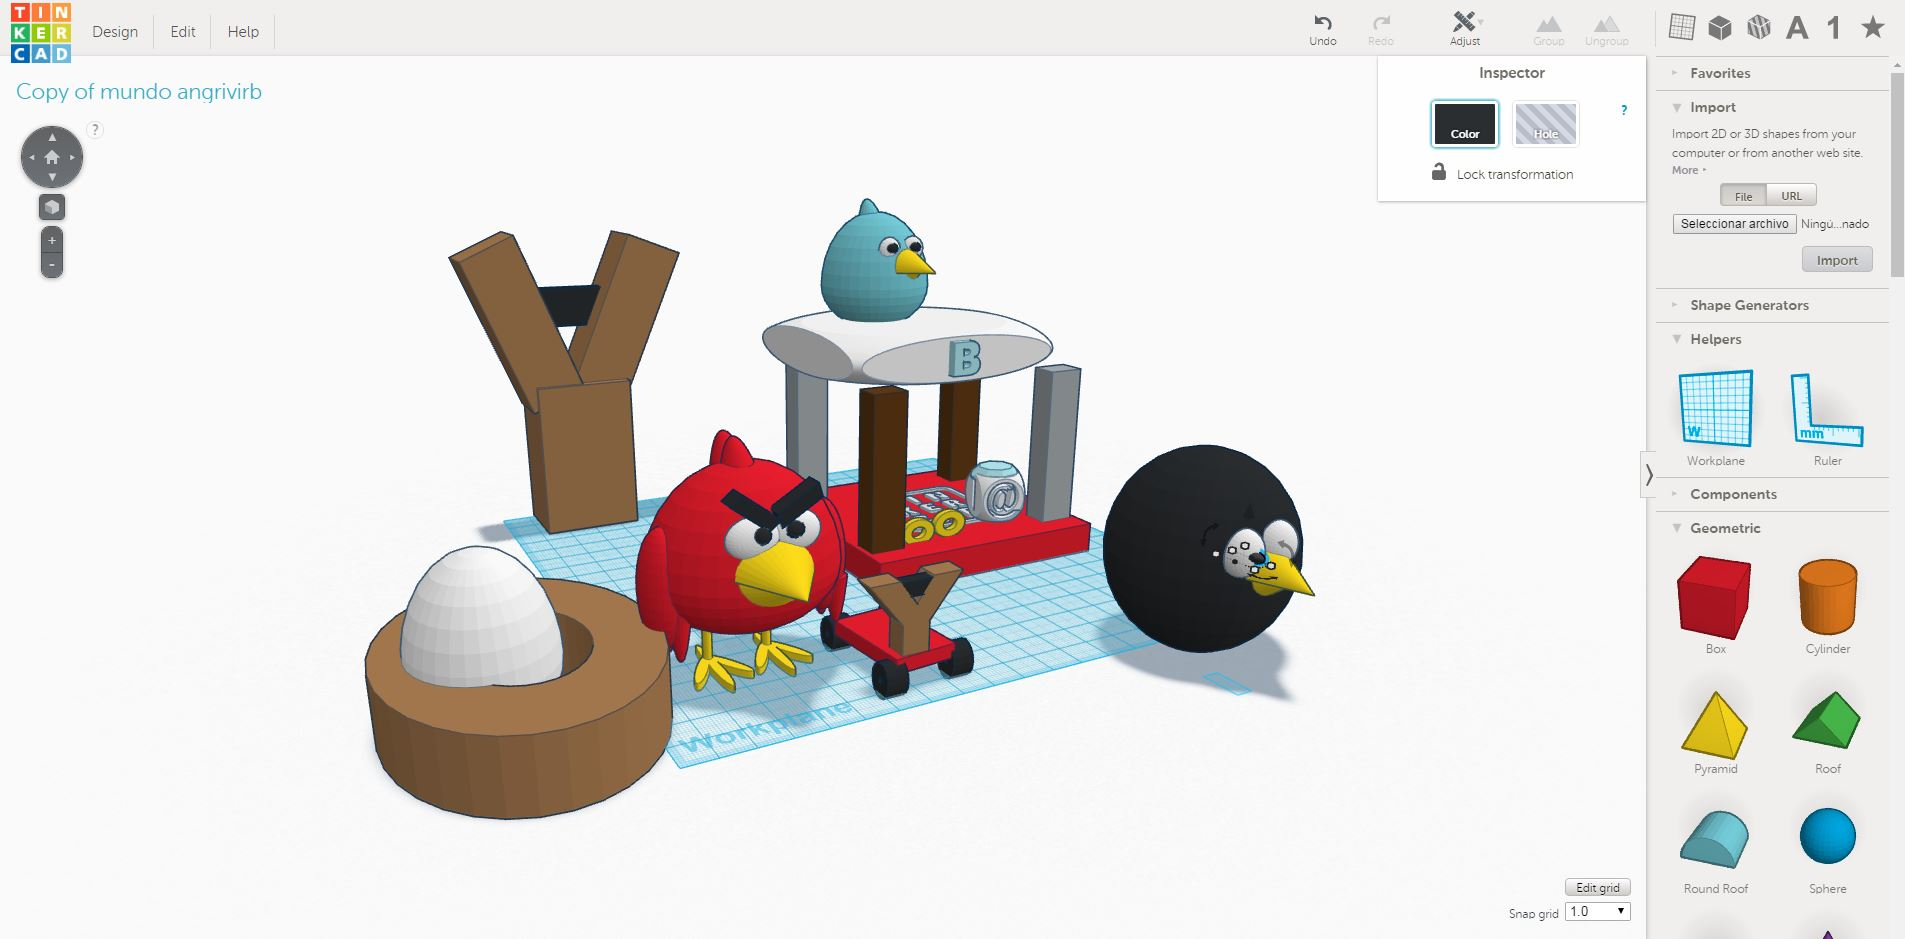 Tinkercad_-_Cr_ation_de_porte_-cl__TinkerCad-angry.jpg